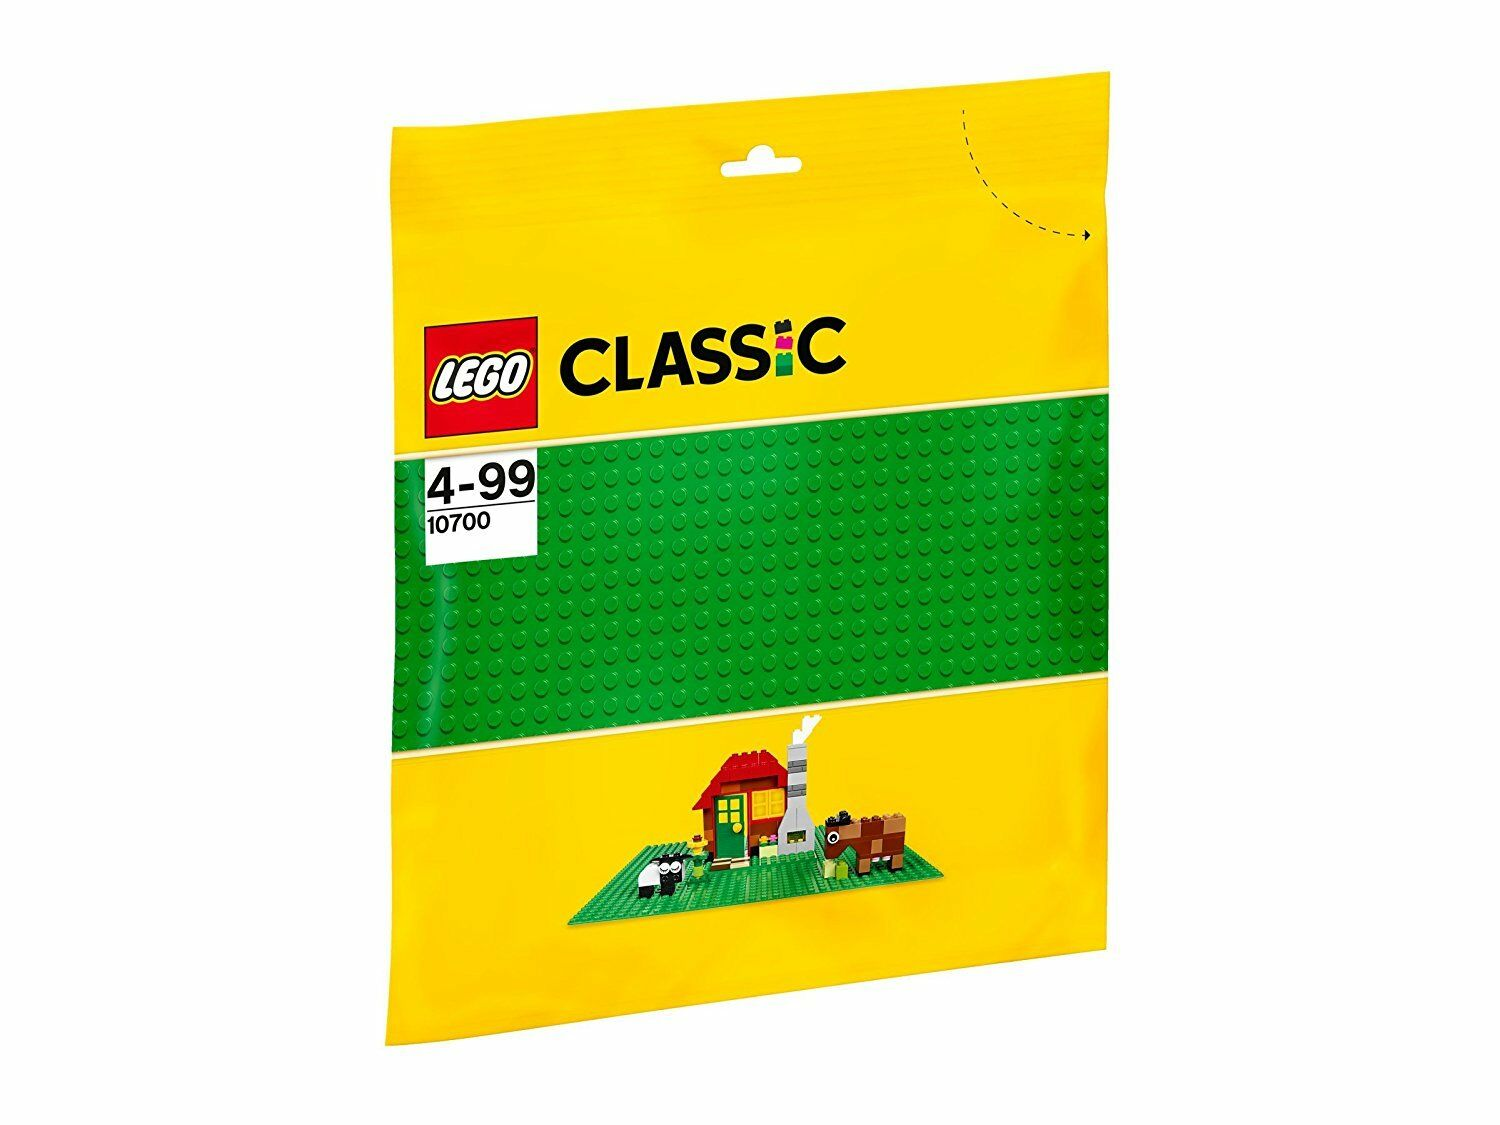 LEGO Classic 10700. Base colour Green. Starting from 4 years